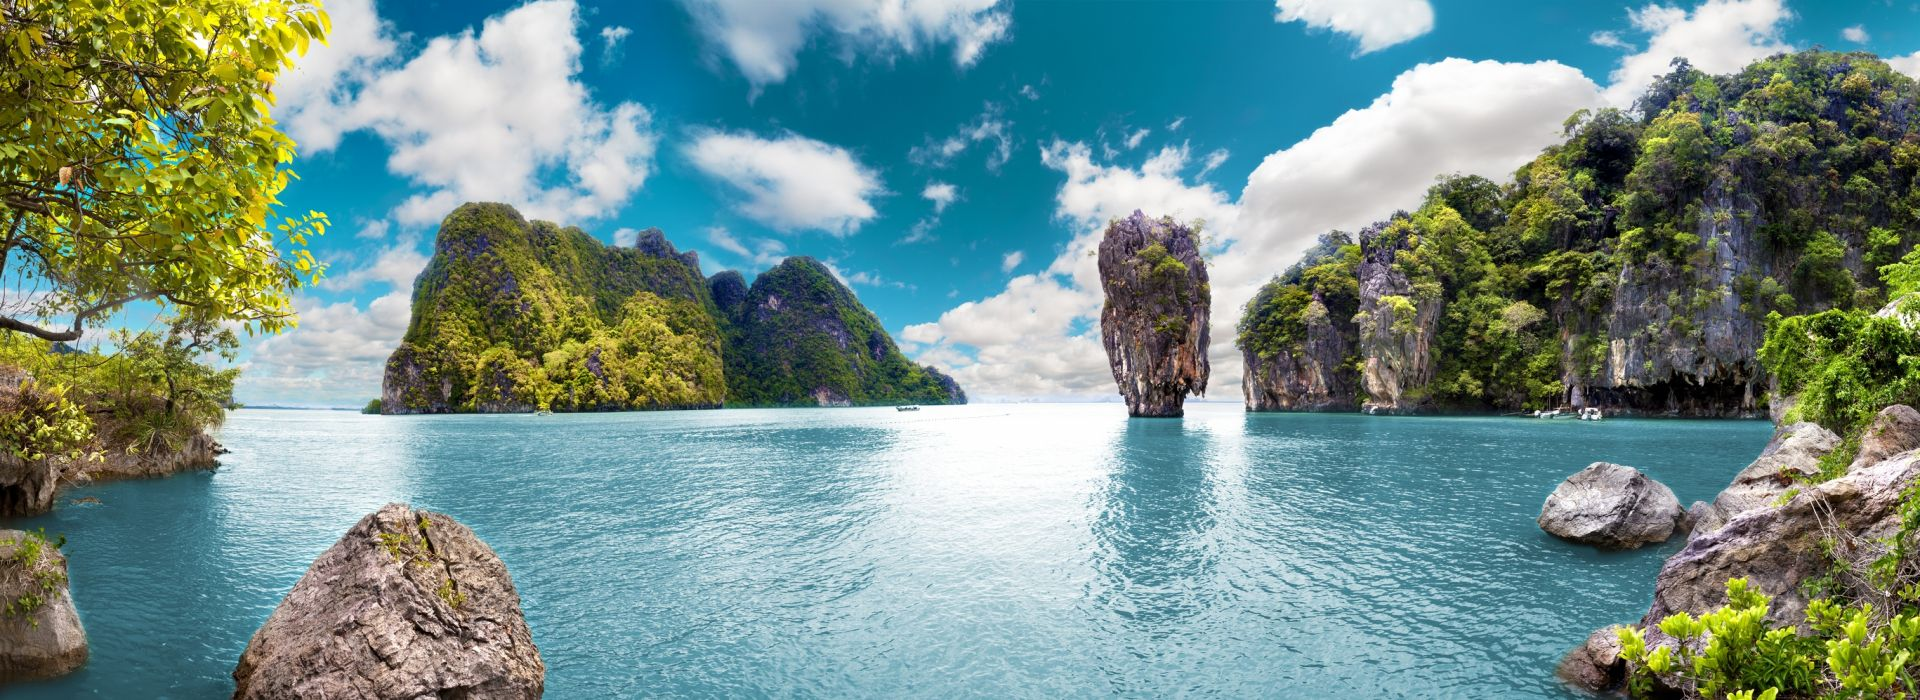 Boat Tours, Water Sports and Marine Wildlife in Thailand